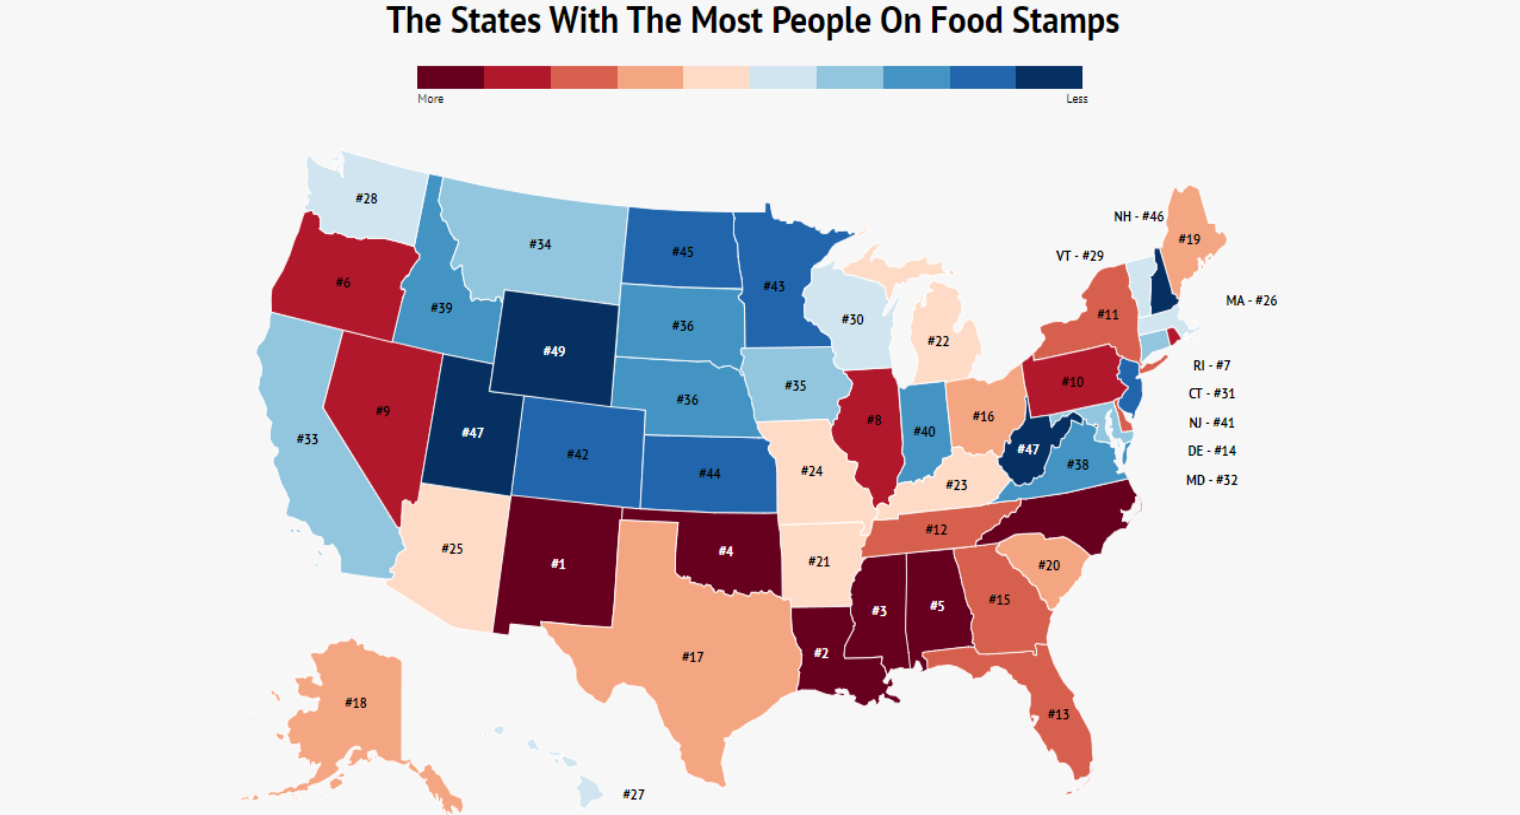 The 10 States With The Most People On Food Stamps